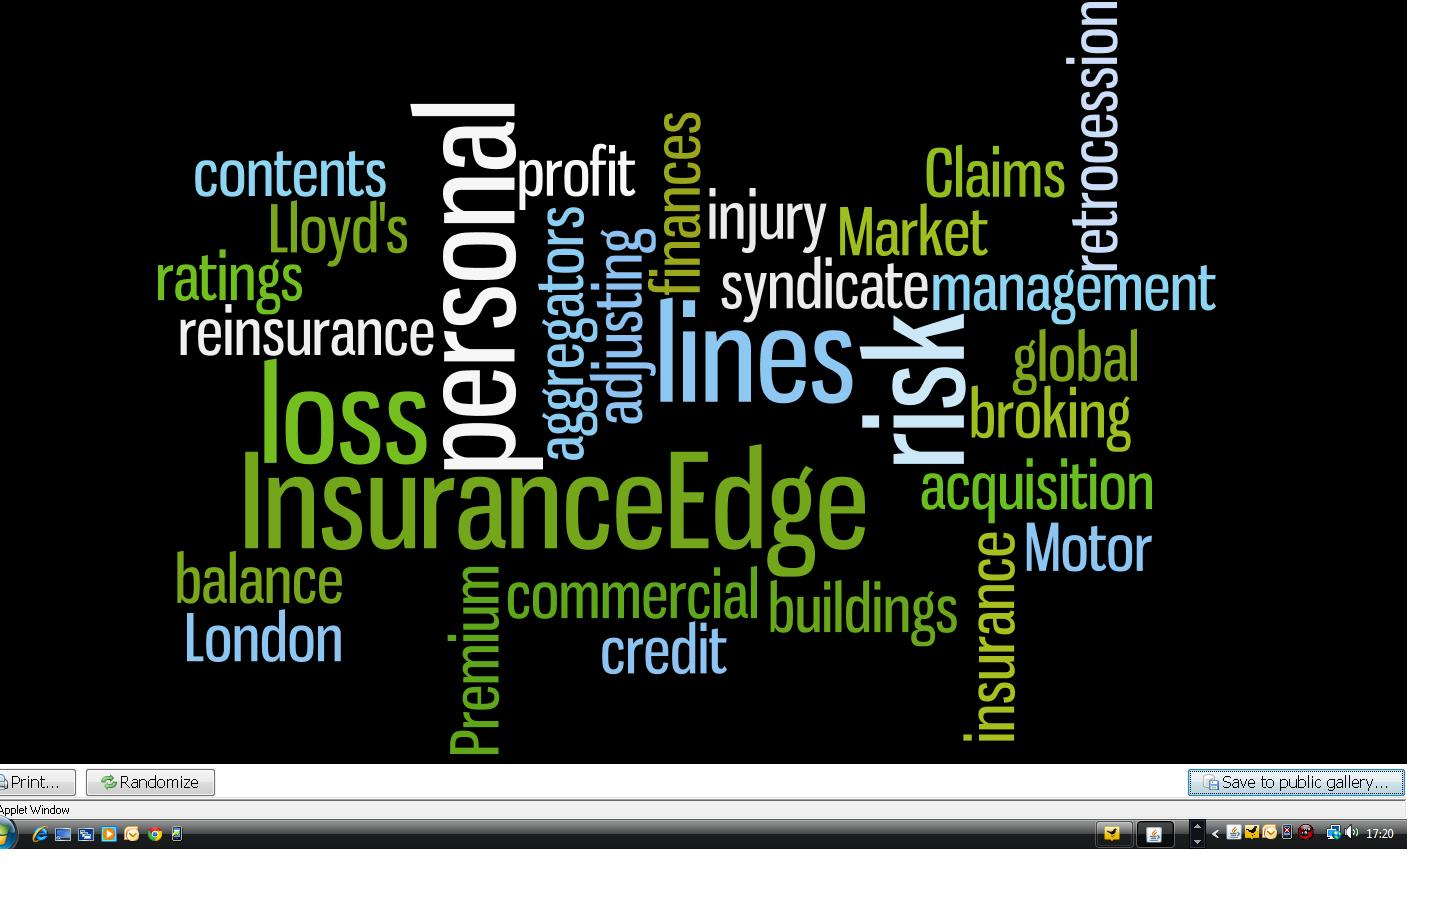 Insurance Edge Cloud